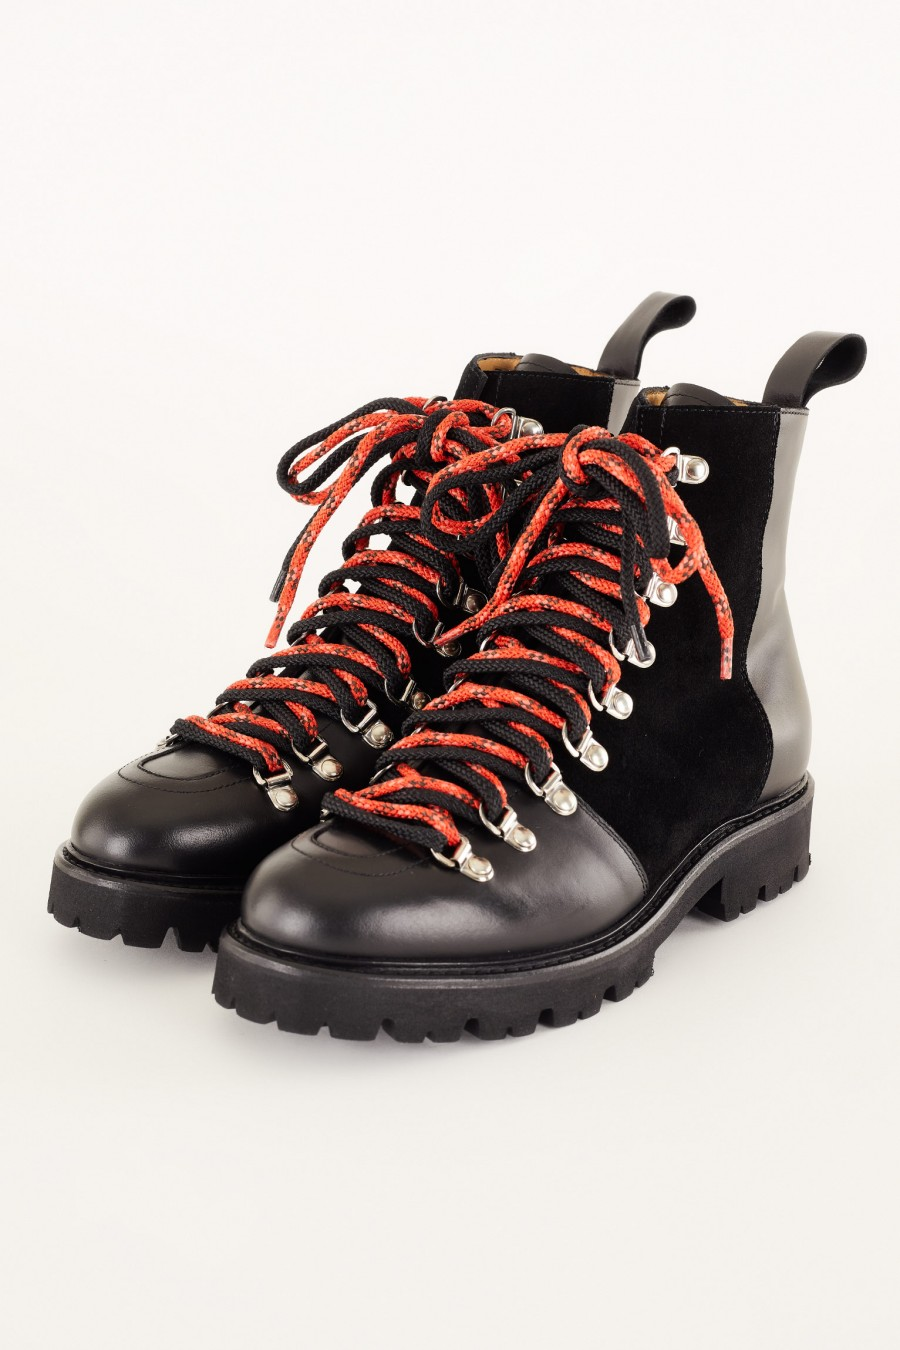 cool pedula-style boots with red laces